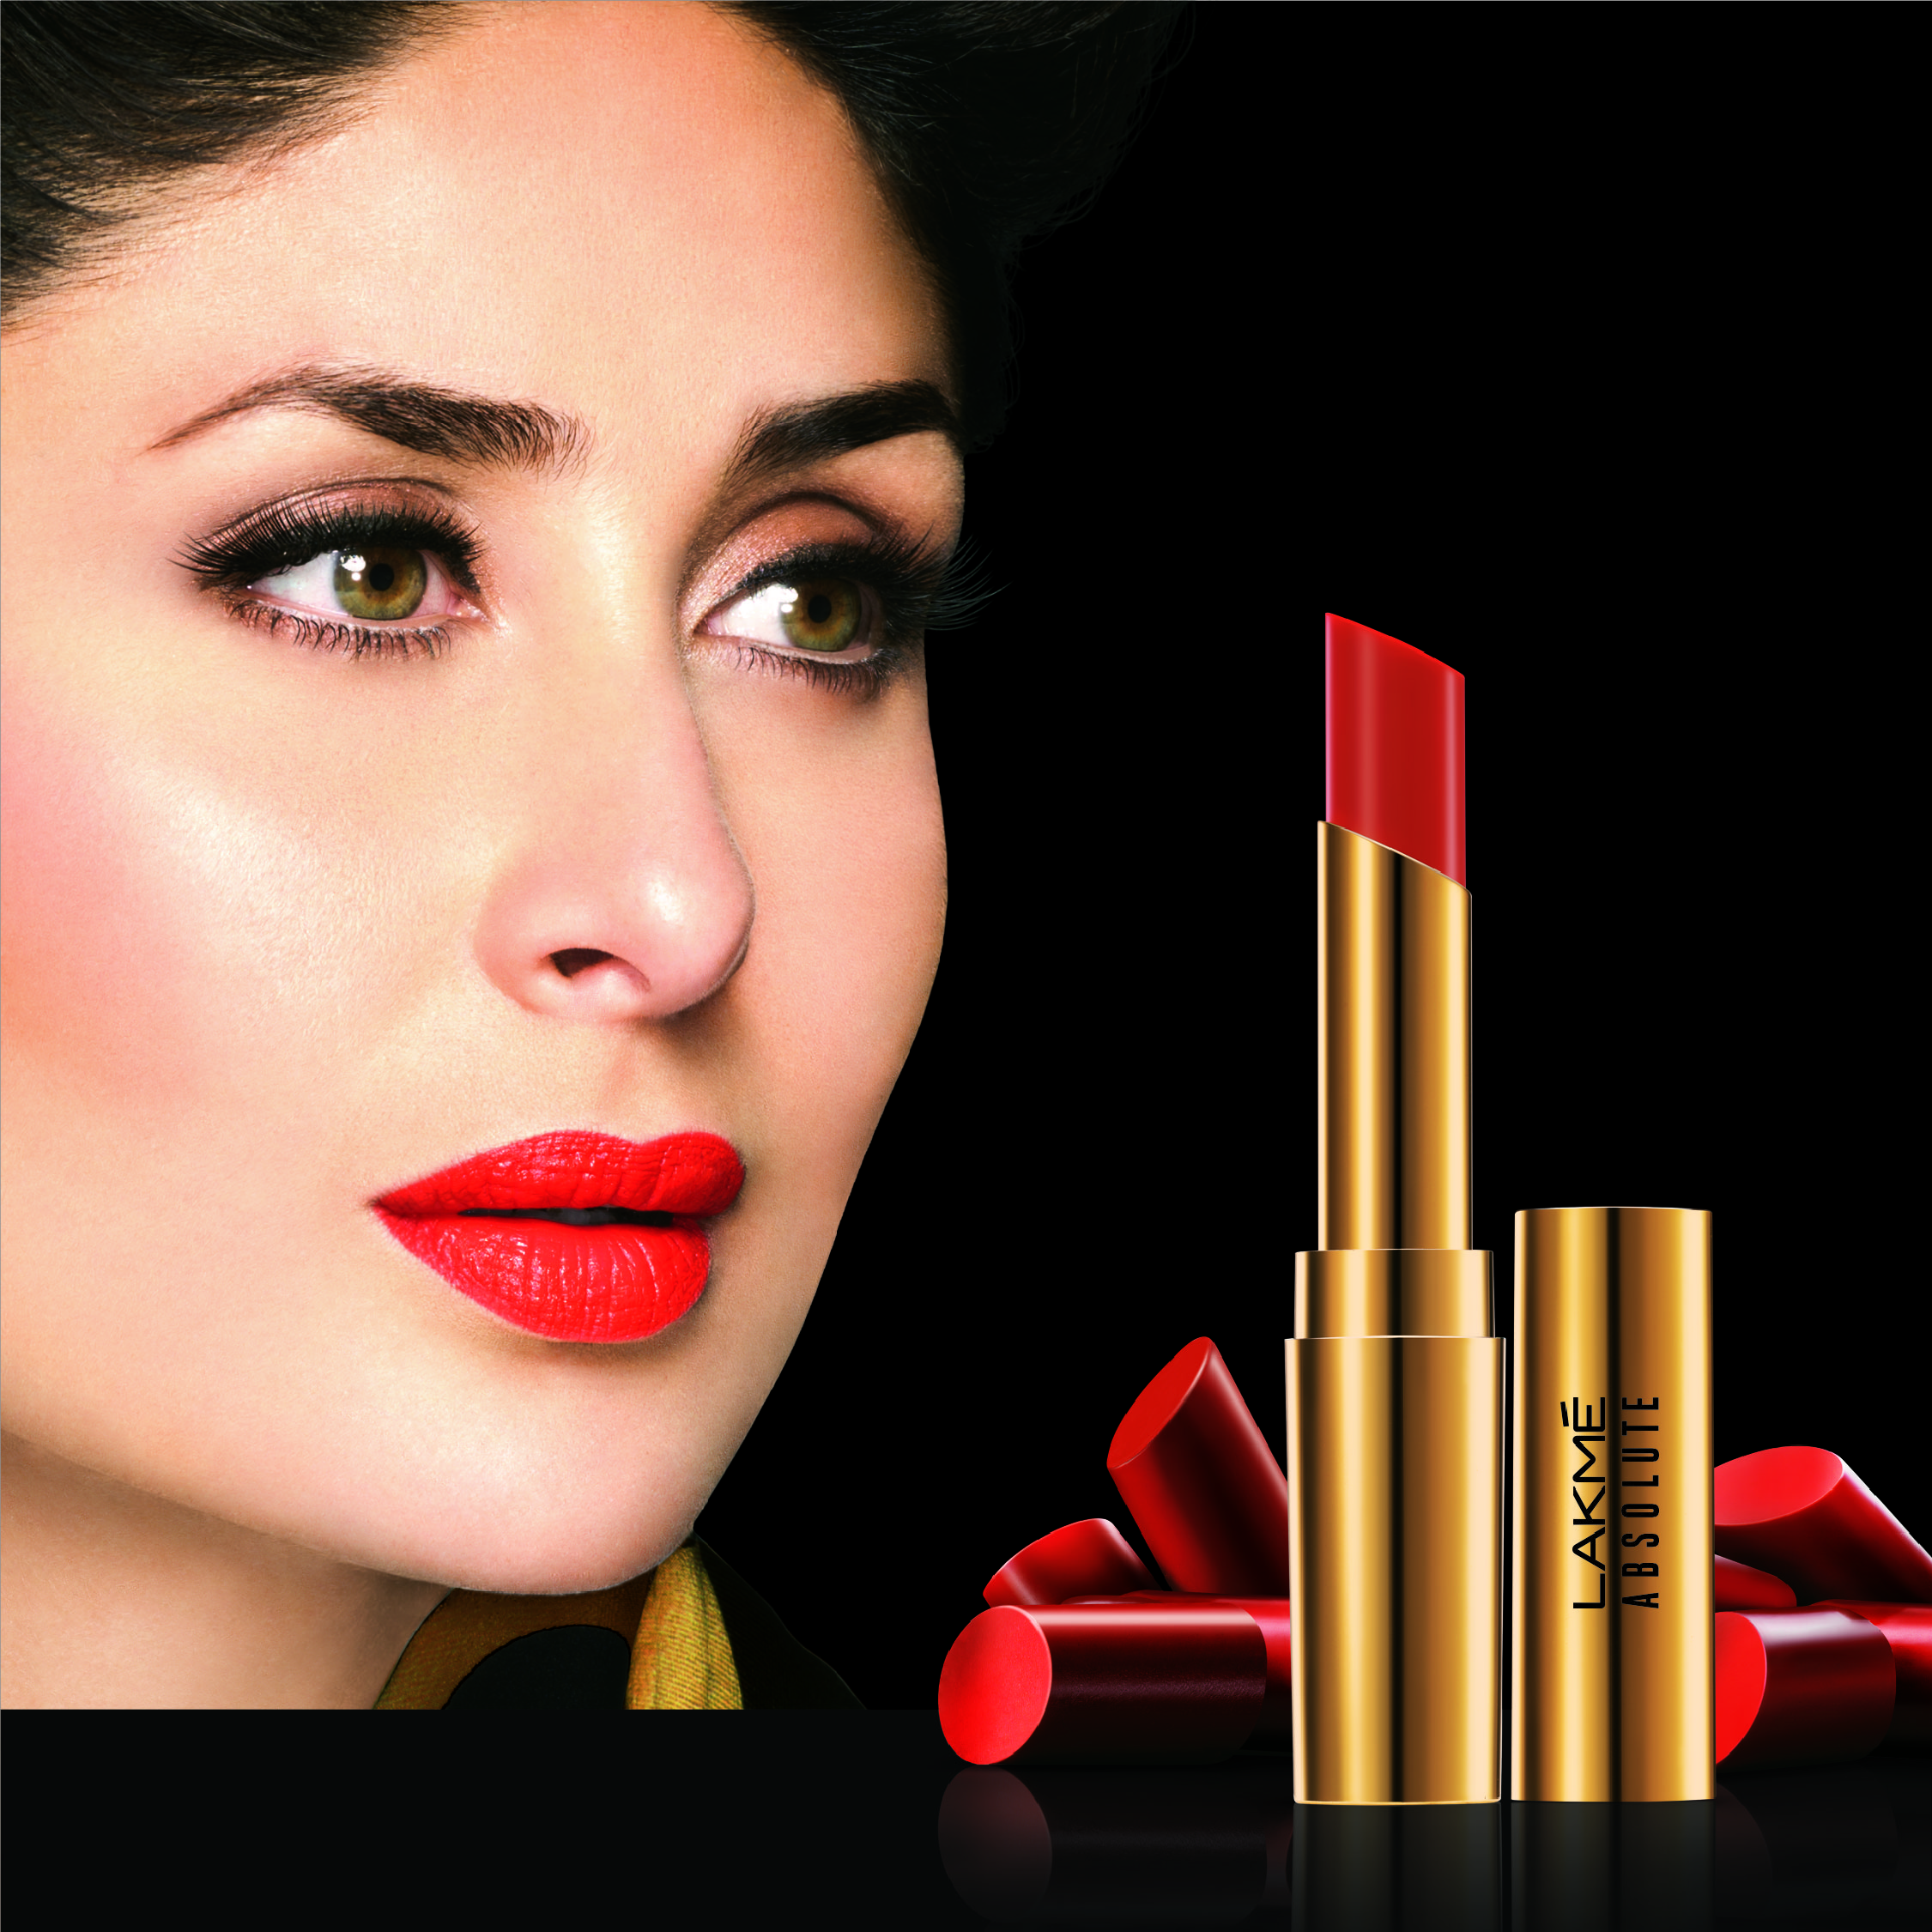 Lakme Absoluet Argan Oil lipstick in Drenched Red